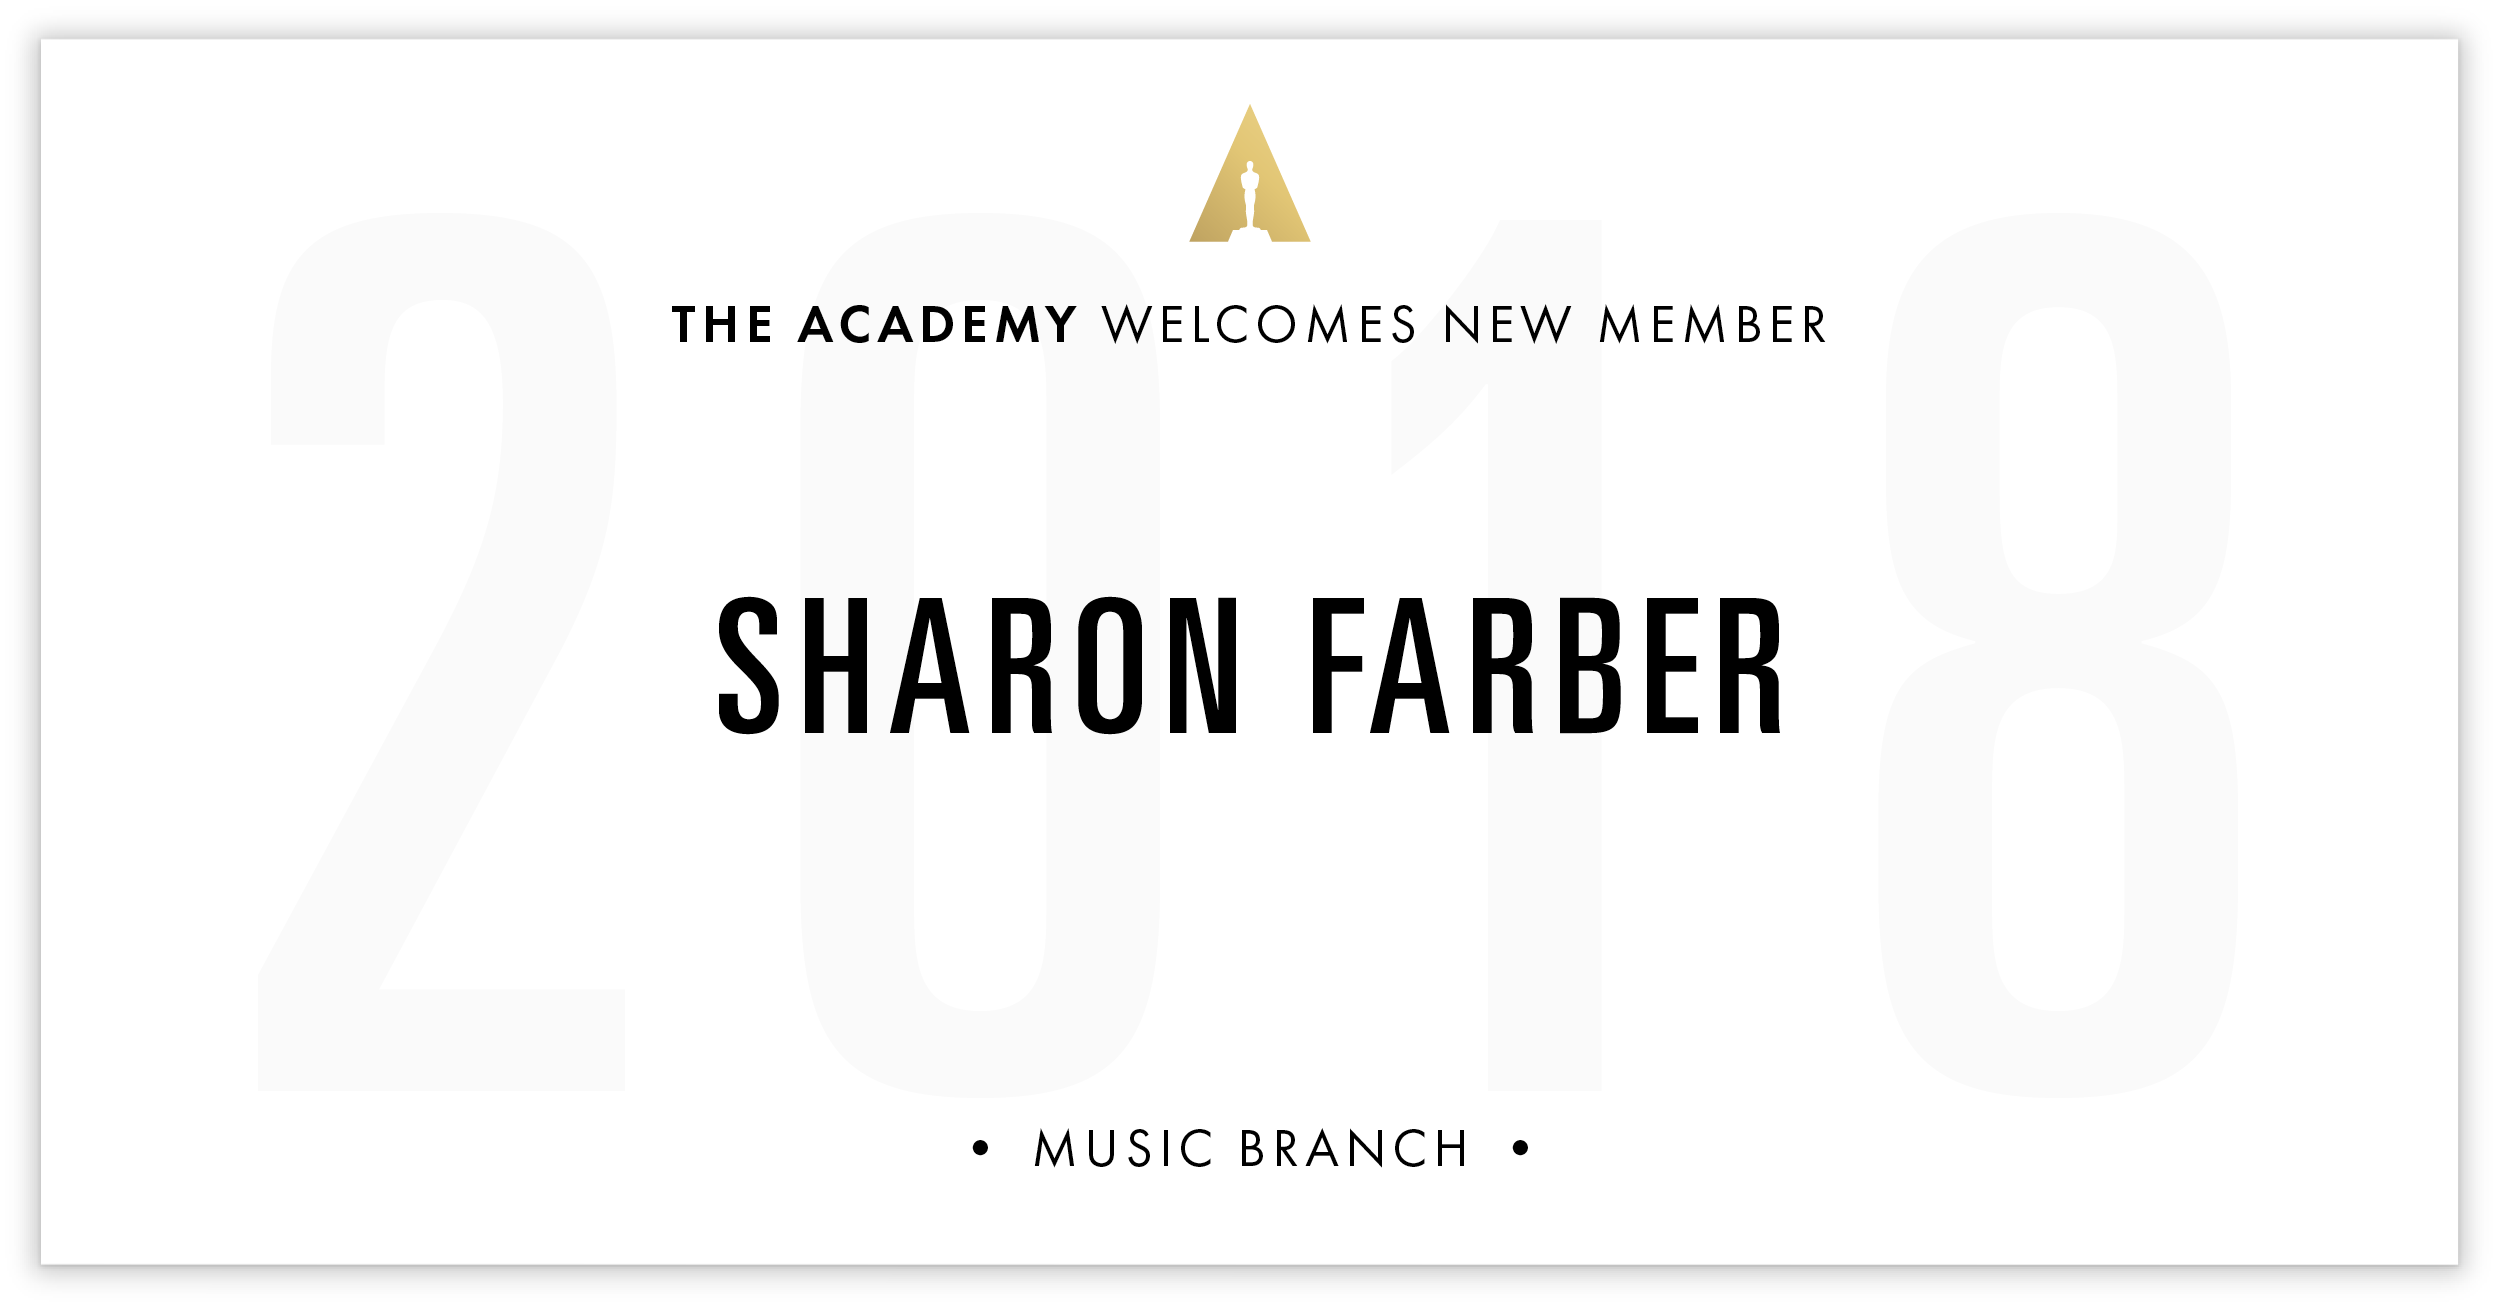 Sharon Farber is invited!